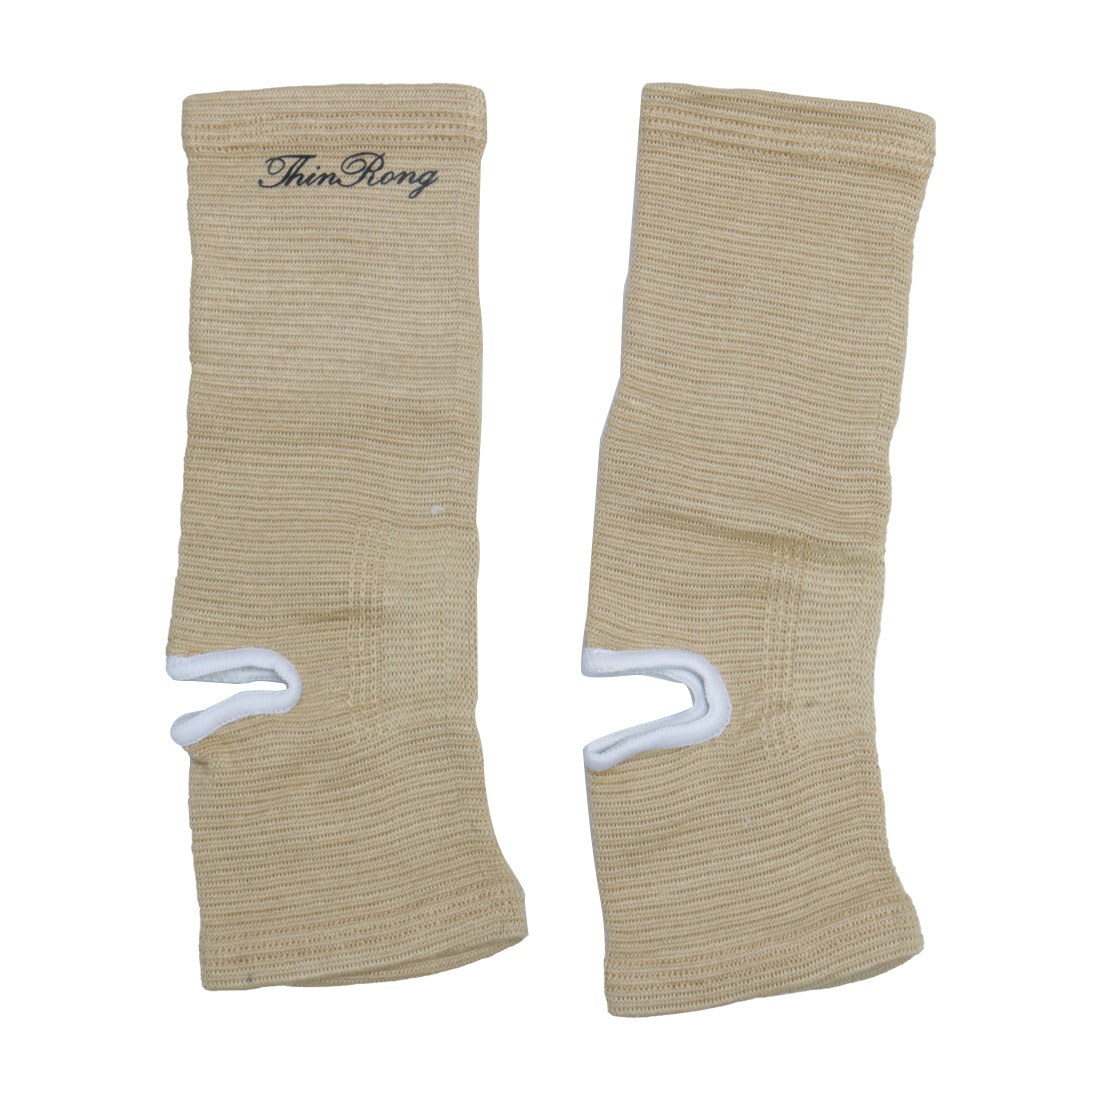 Unisex Sports Running Stretchy Ankle Brace Compression Support Sleeve Light Brown 2pcs